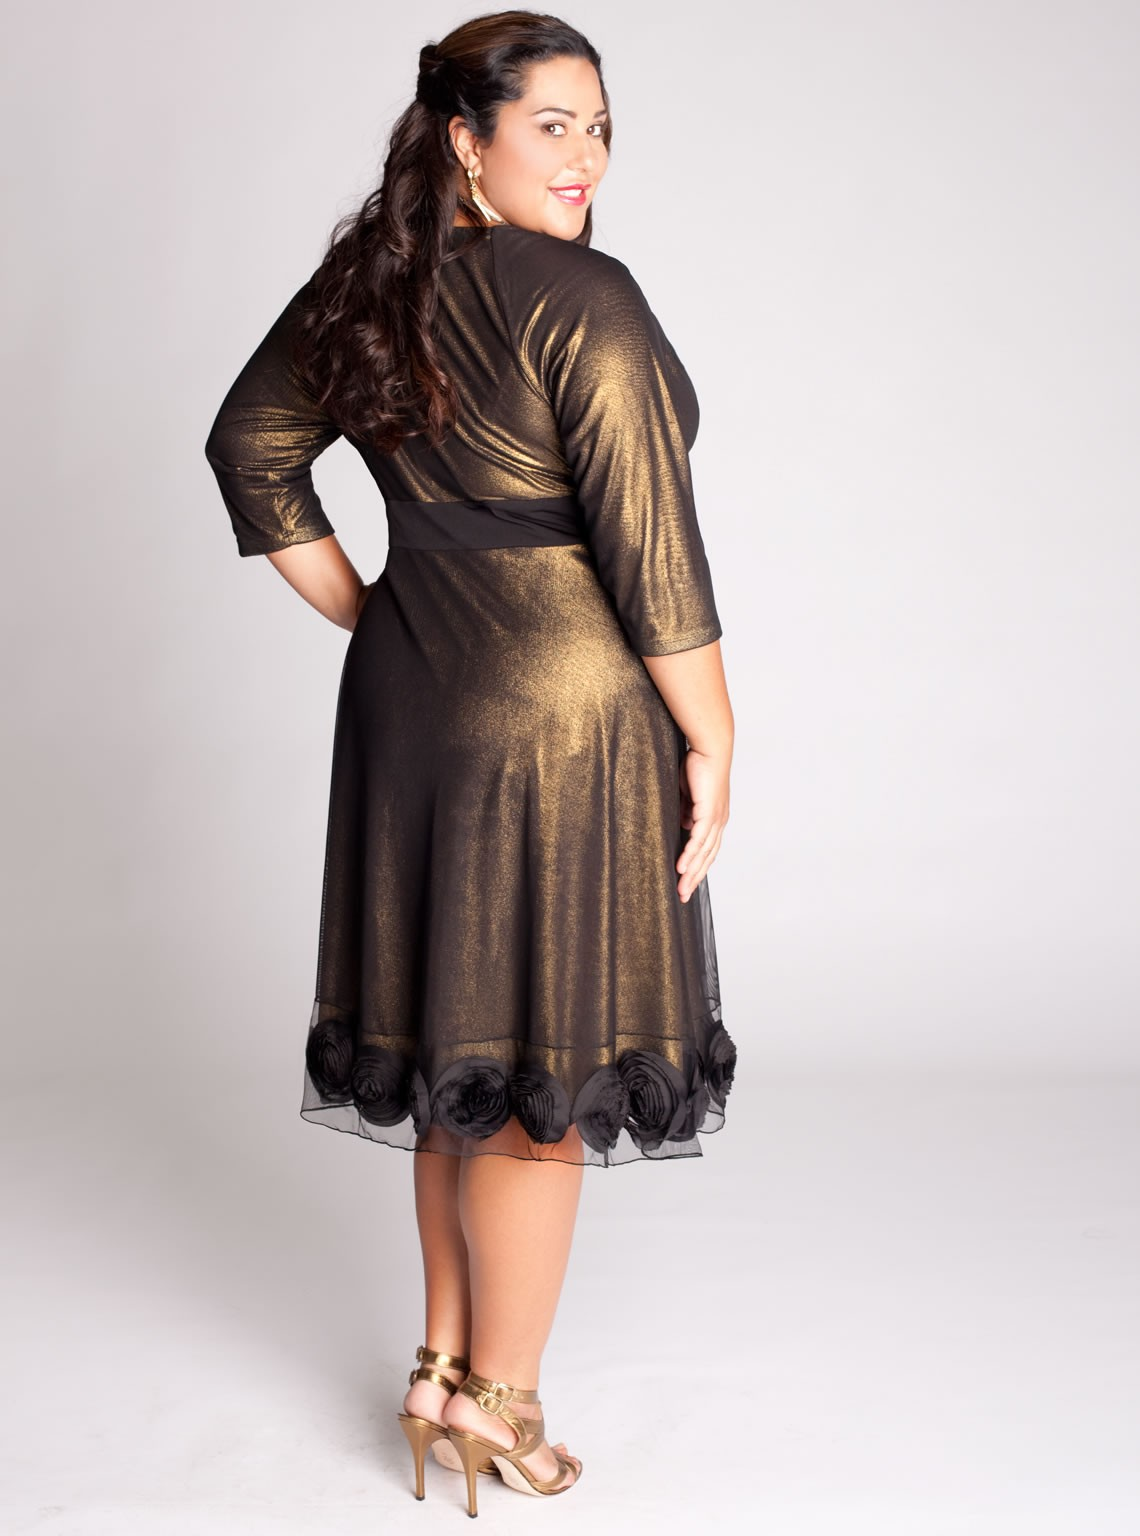 Plus Size Gowns, Plus Size Nightgowns, Plus Size Evening Gowns, Plus ...